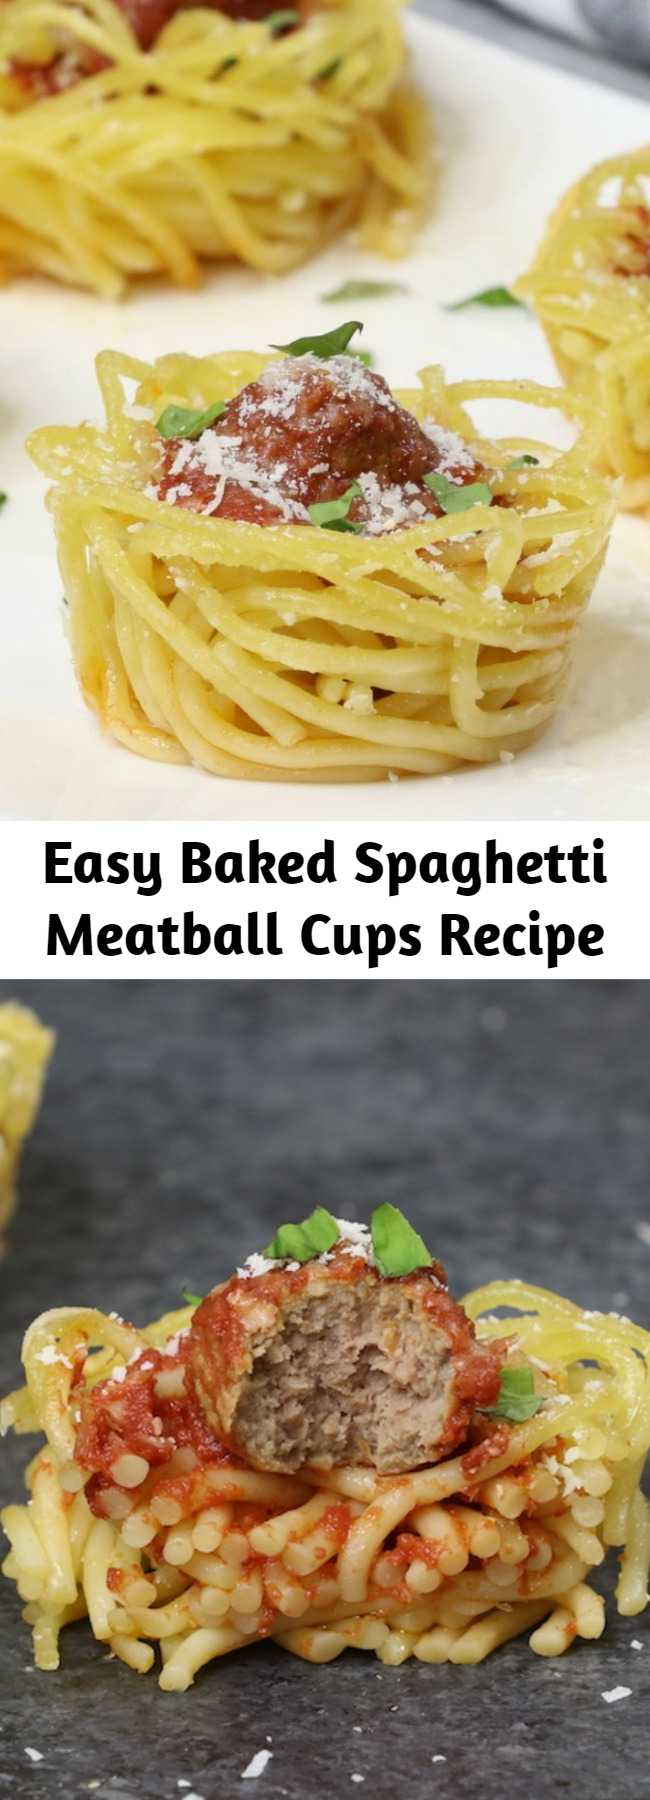 Easy Baked Spaghetti Meatball Cups Recipe - Baked Spaghetti and Meatball Cups are a flavorful bite-size appetizer that's fun to make and share, plus they're a fabulous way to use up leftover spaghetti. All you need is some pasta sauce, meatballs, parmesan cheese and an optional egg to hold them together. Easy to make ahead of time for a party.